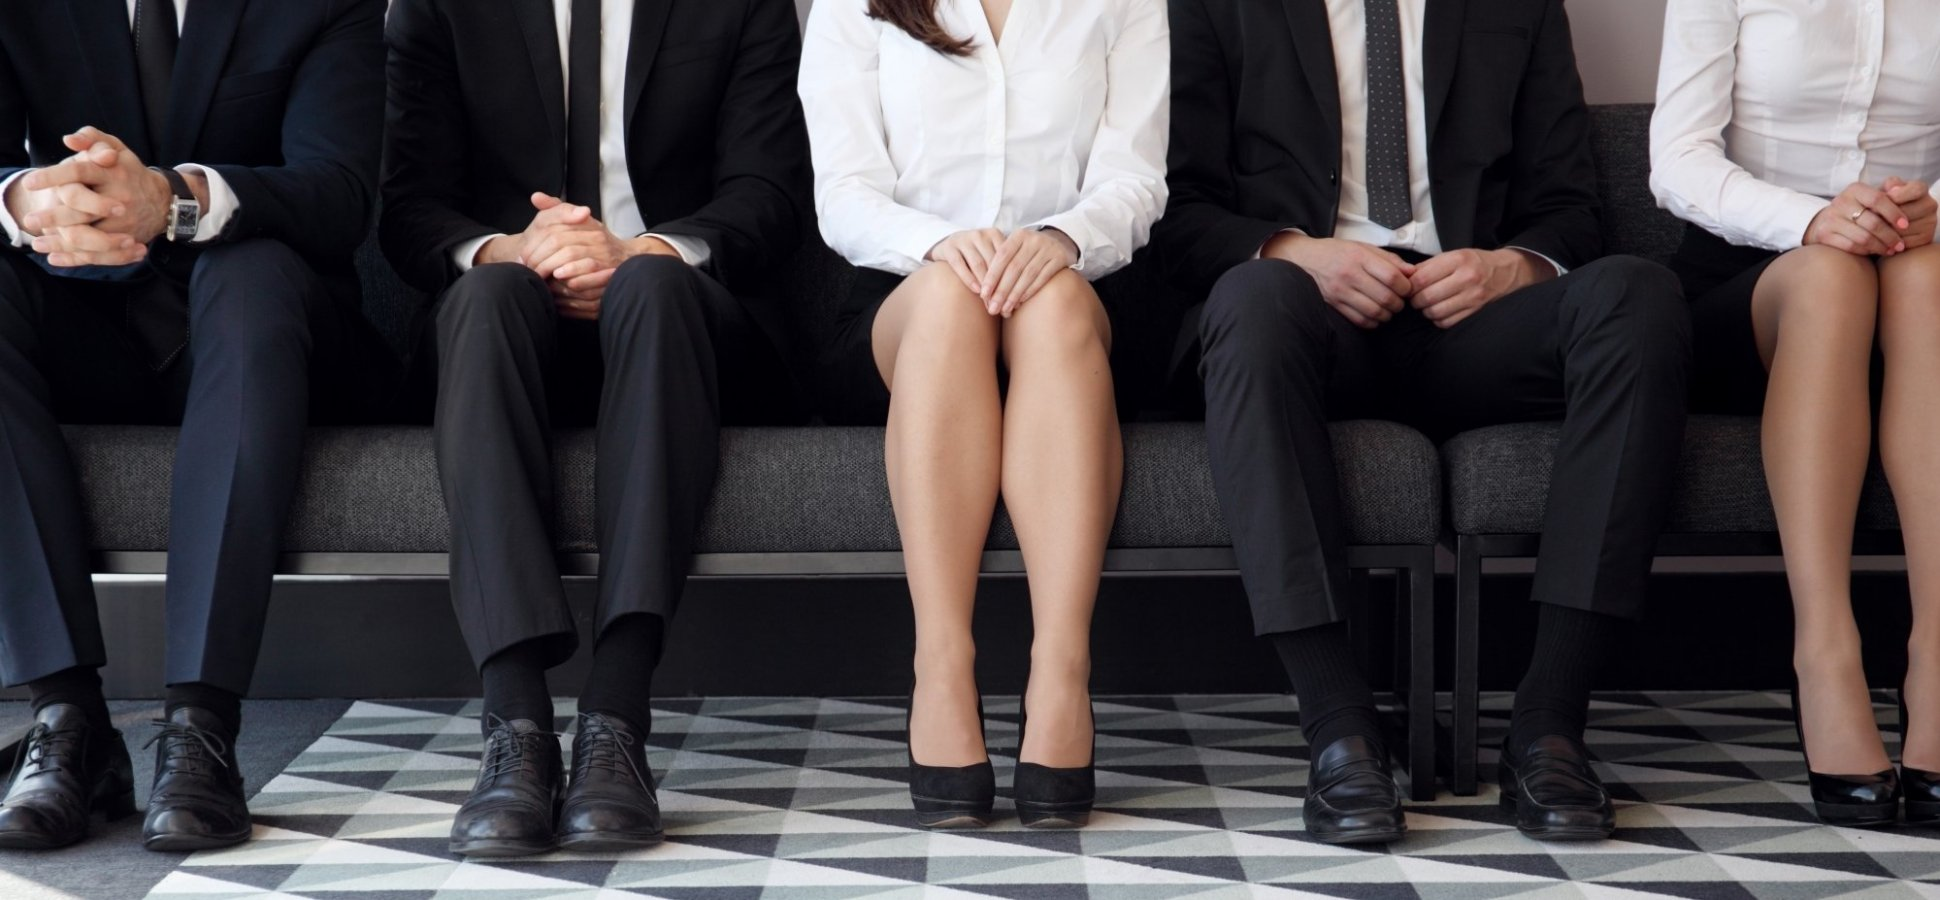 6 Signs to Immediately Identify a Job Candidate With High and Low Emotional Intelligence